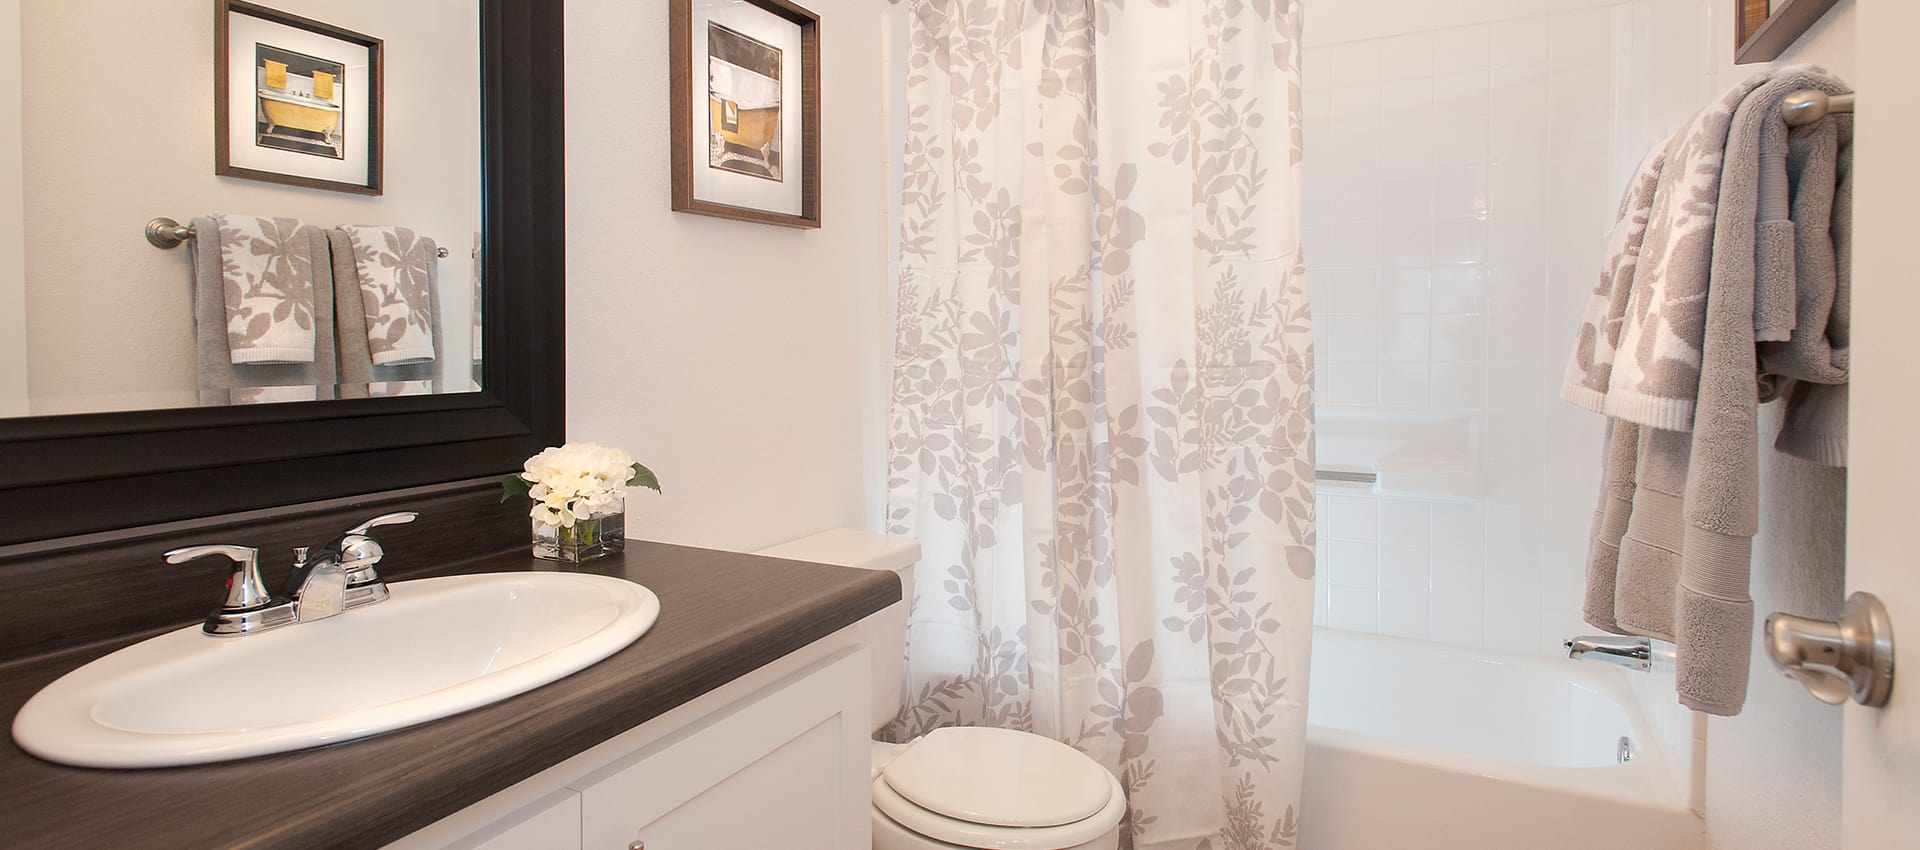 Bathroom at Reserve at Capital Center Apartment Homes in Rancho Cordova, CA